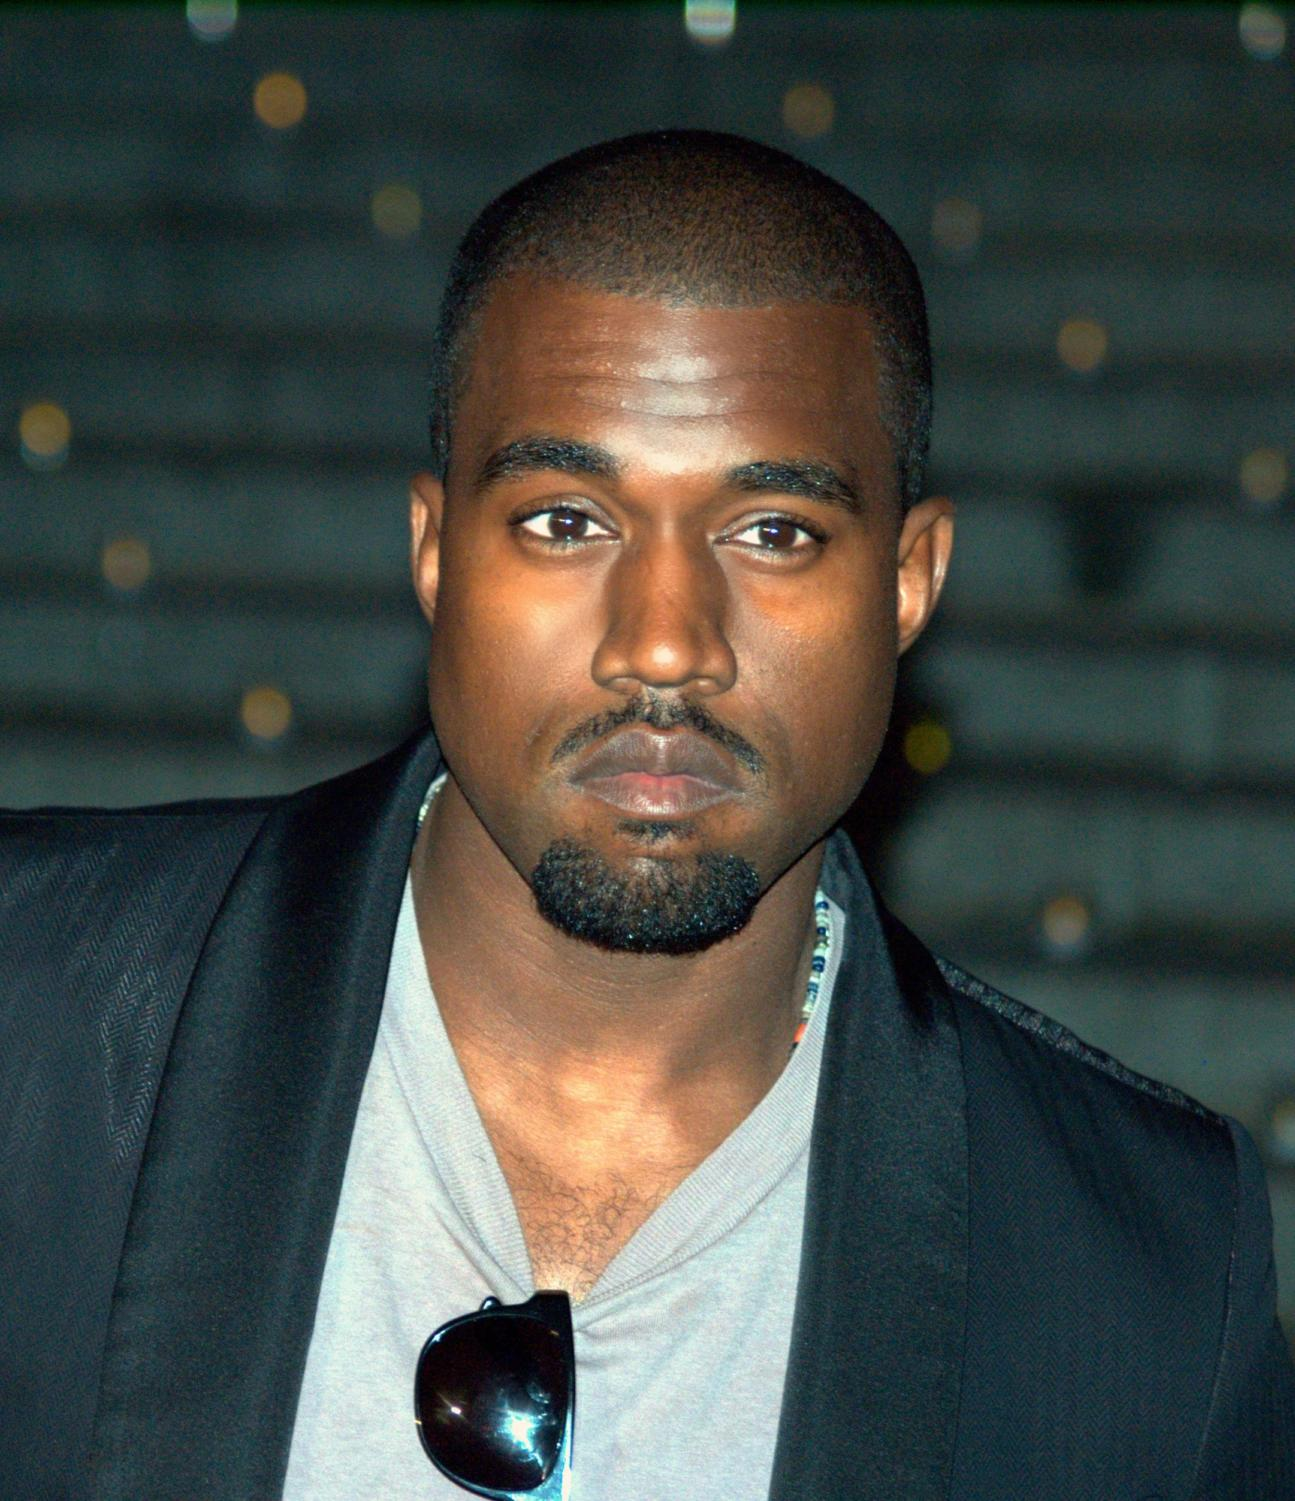 Mason Hurley, Jaiman White, and Mitch Davis discuss rappers Kanye and Jay Z.